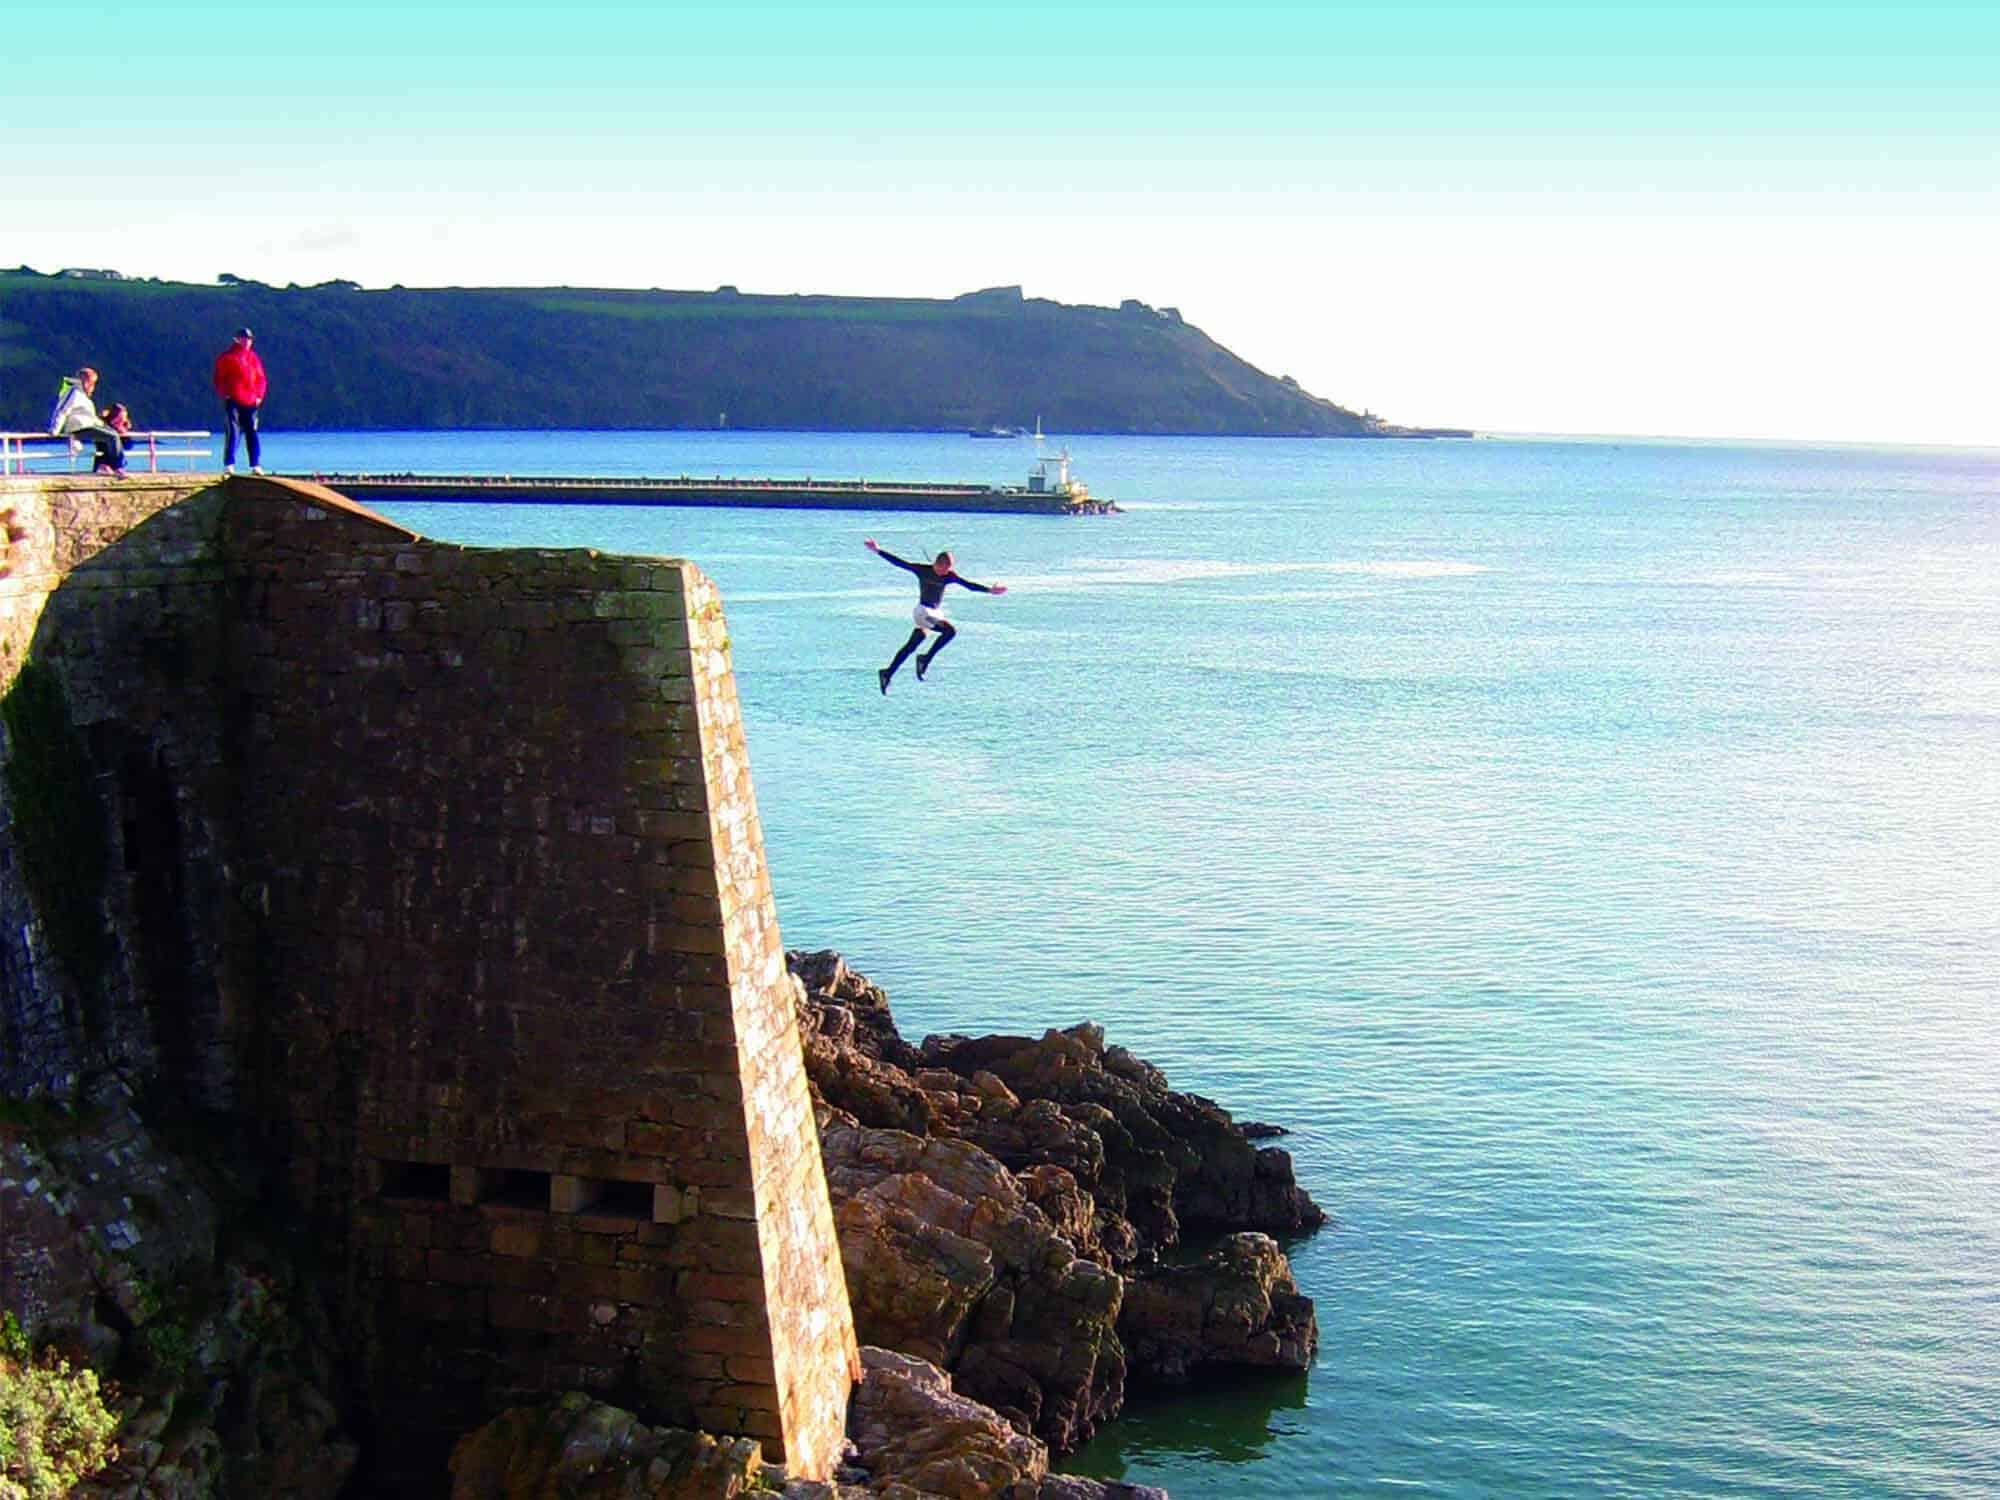 Jumping into the sea from a height